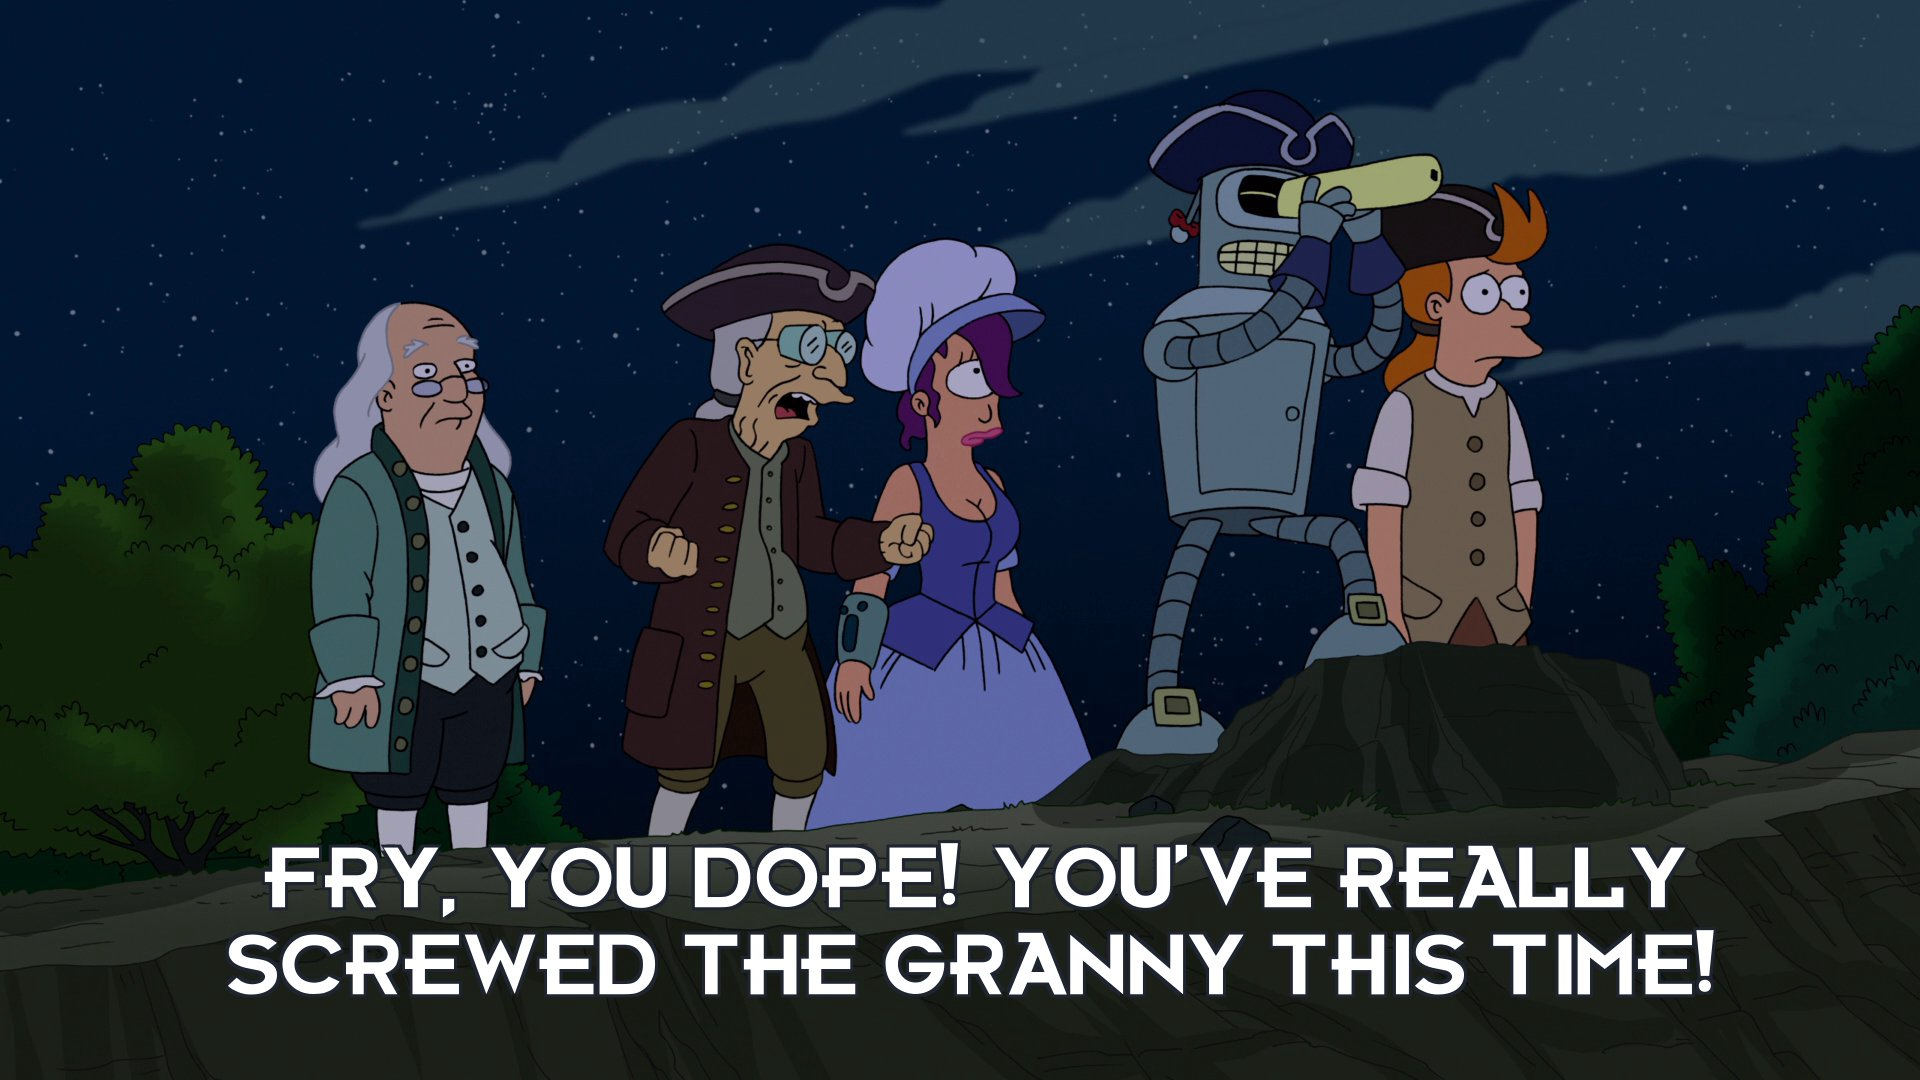 Prof Hubert J Farnsworth: Fry, you dope! You've really screwed the granny this time!